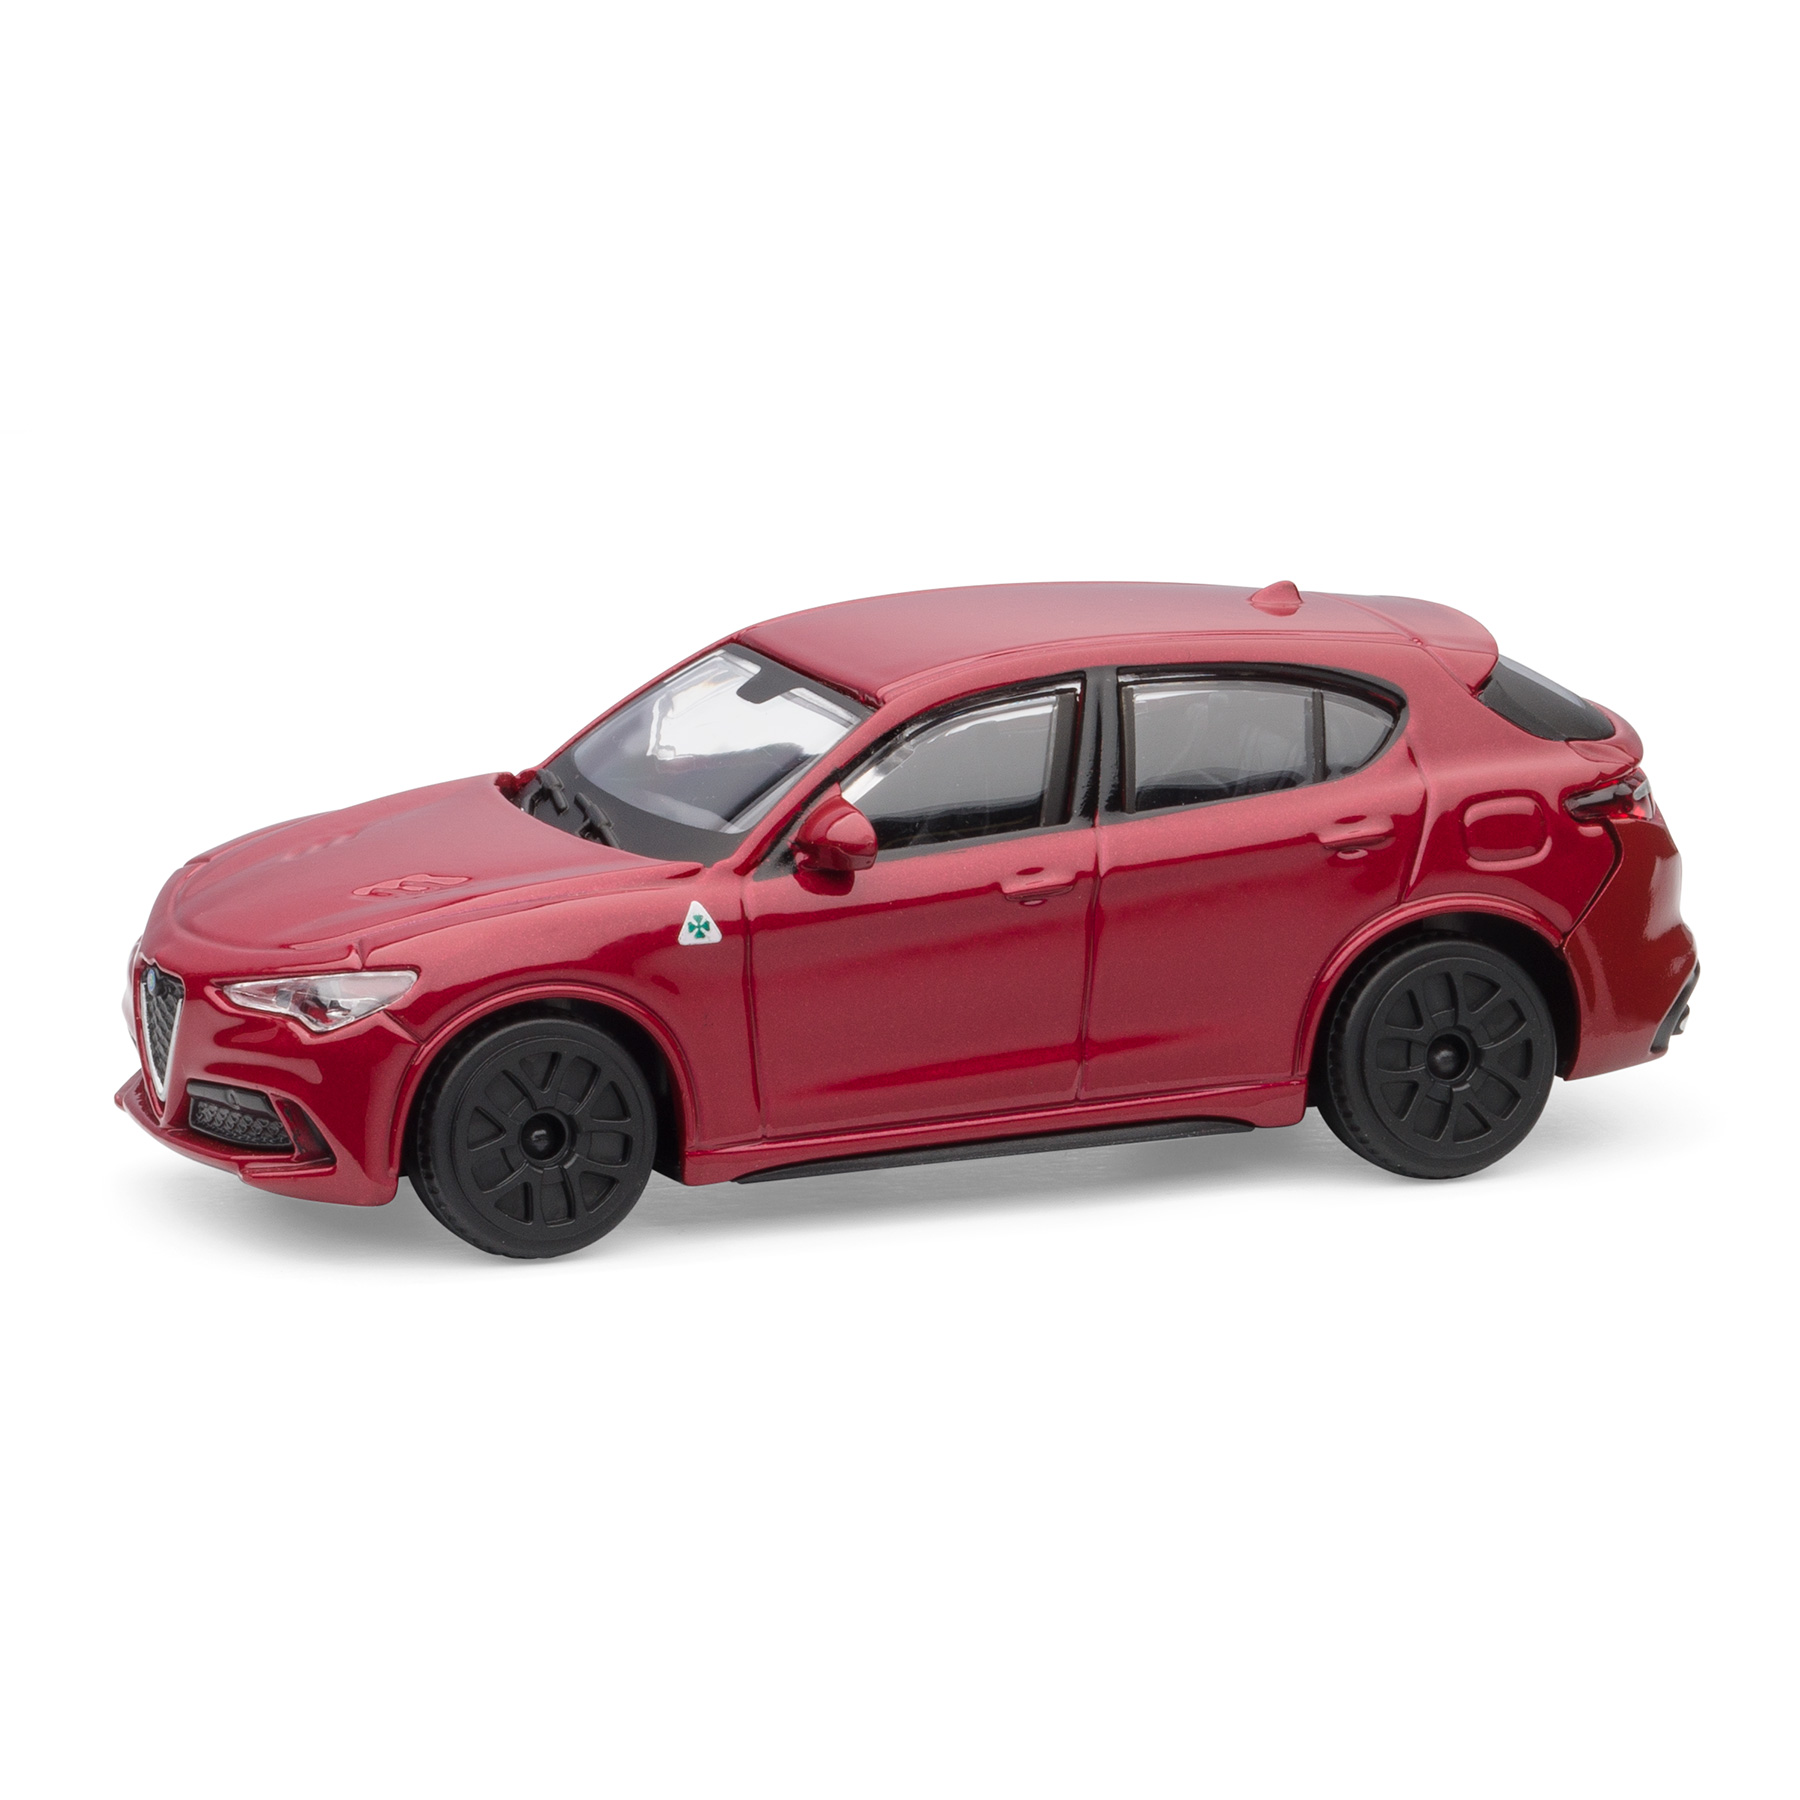 FCA Catalogue. Alfa Romeo Stelvio 1:43